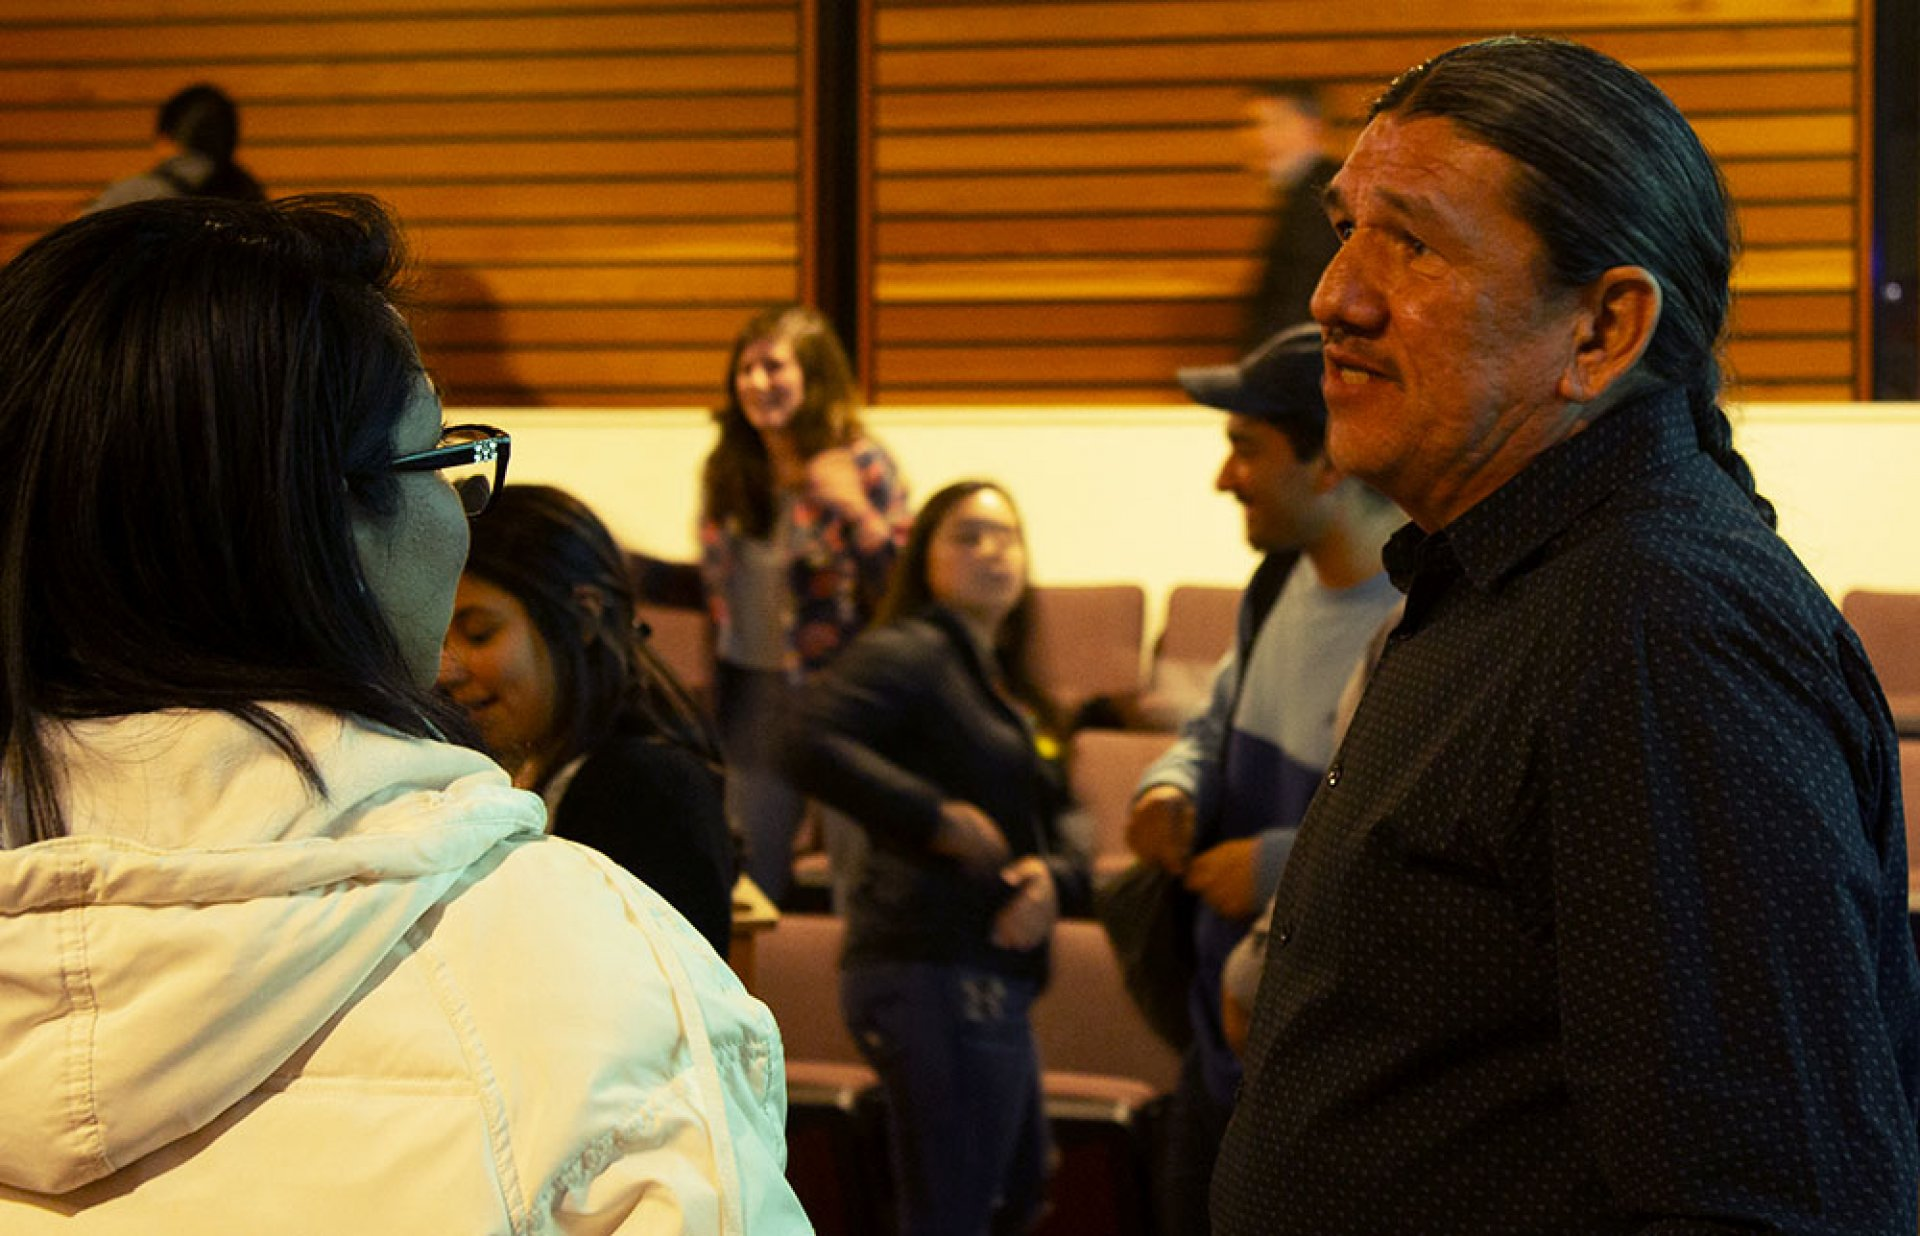 Ron Reed speaking with a student after the panel about concepts that were mentioned that night. March 5.